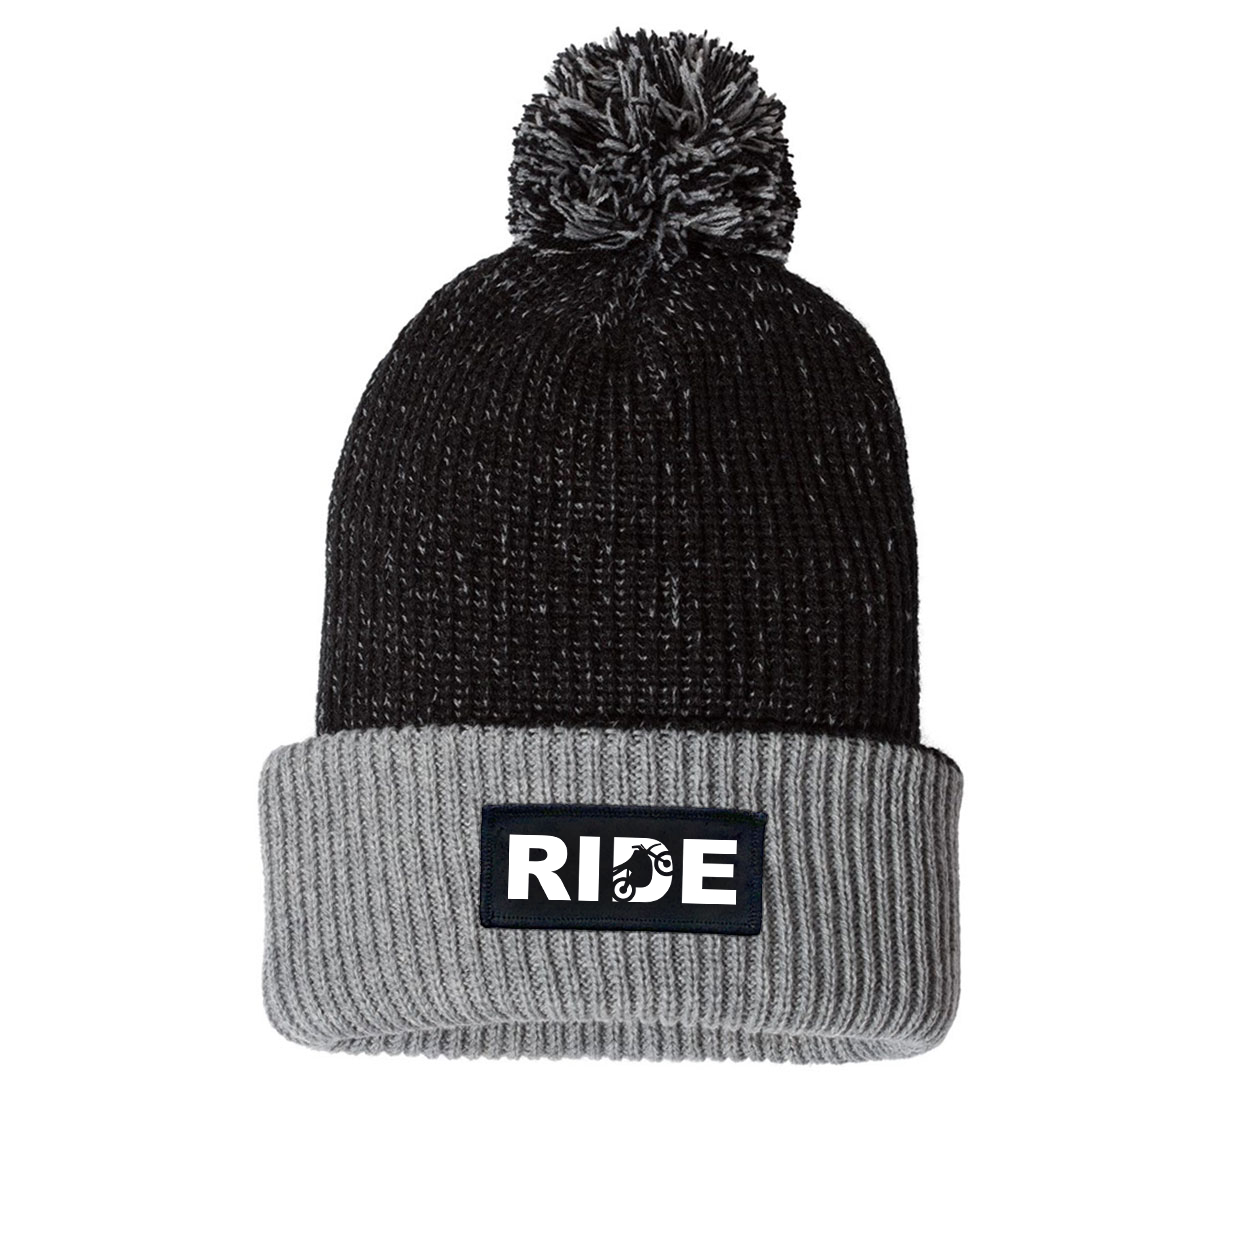 Ride Moto Logo Night Out Woven Patch Roll Up Pom Knit Beanie Black/Gray (White Logo)